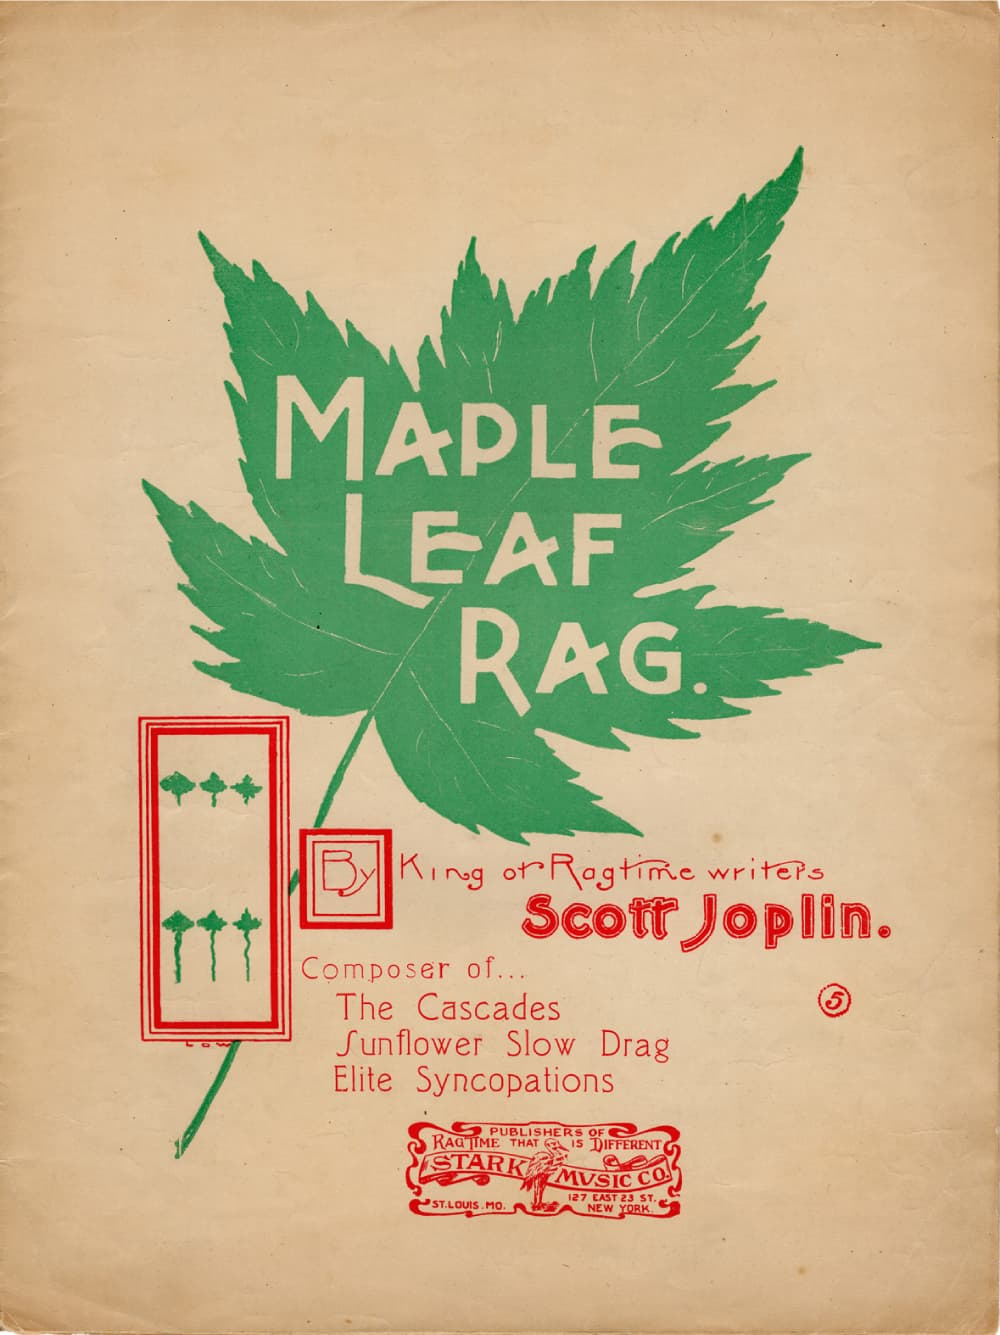 1906 cover of Maple Leaf Rag by Scott Jopin